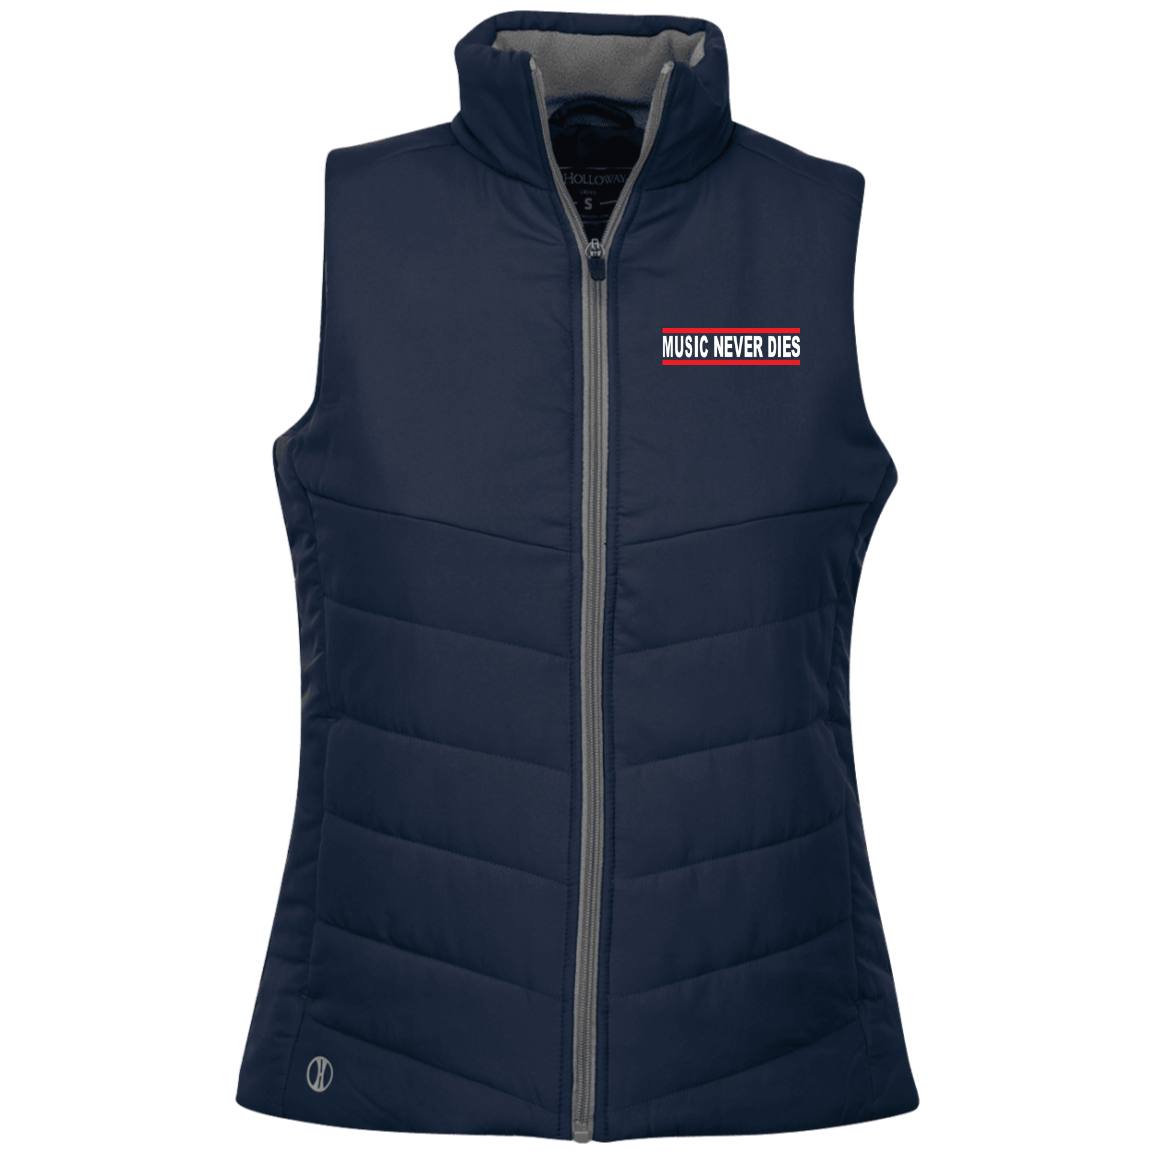 Music Never Dies Ladies' Quilted Vest